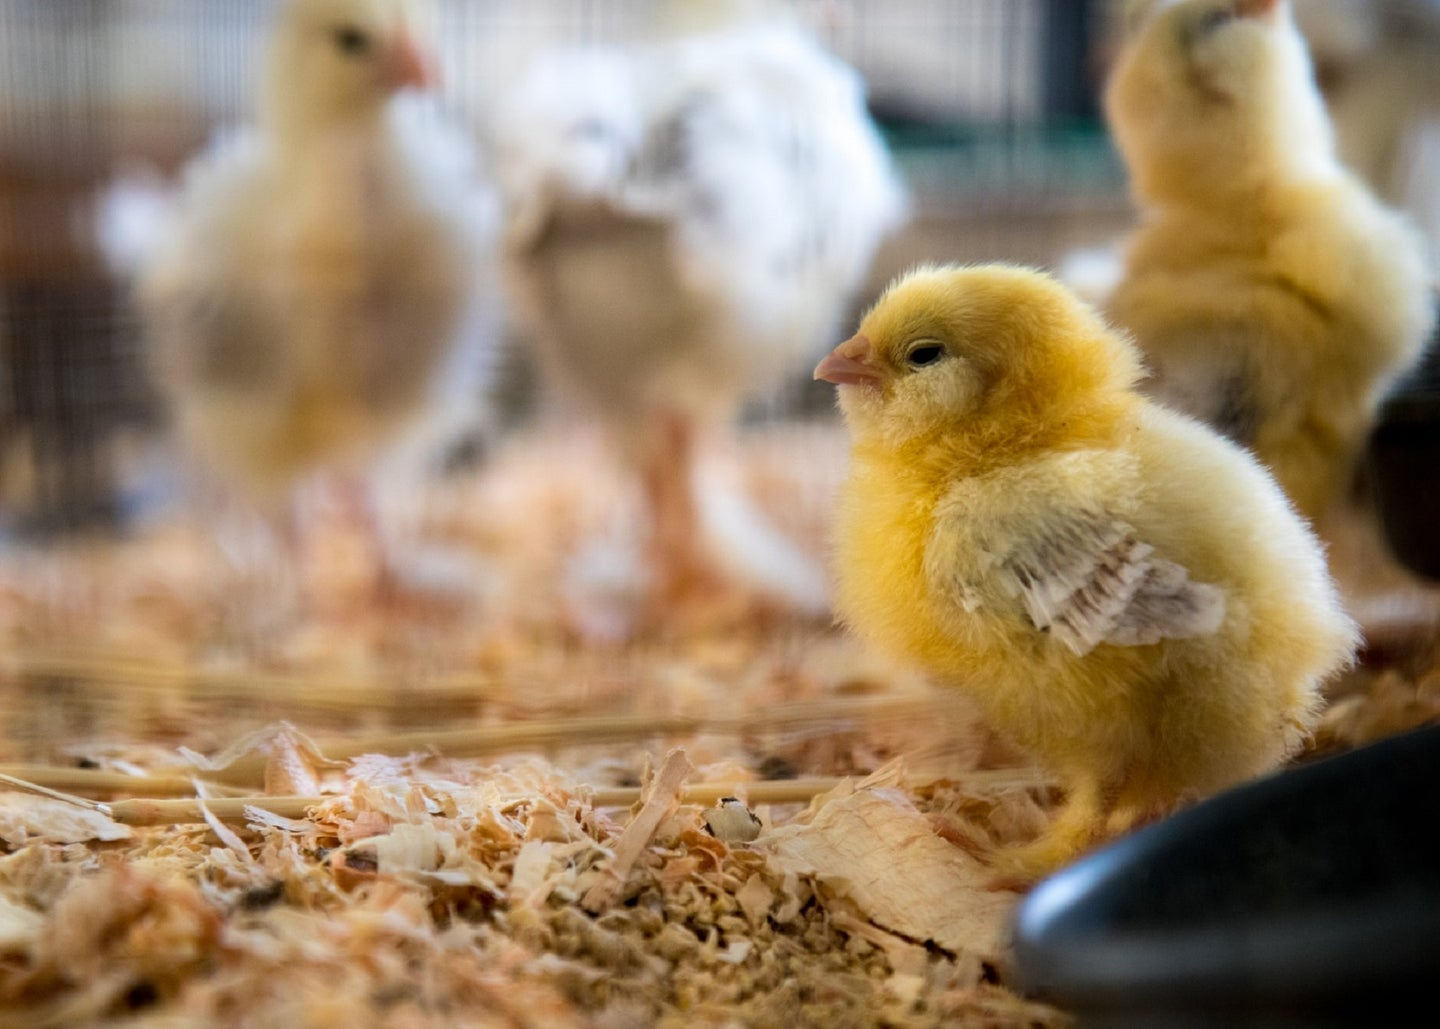 Chick sitting on woodchips in a wire pen